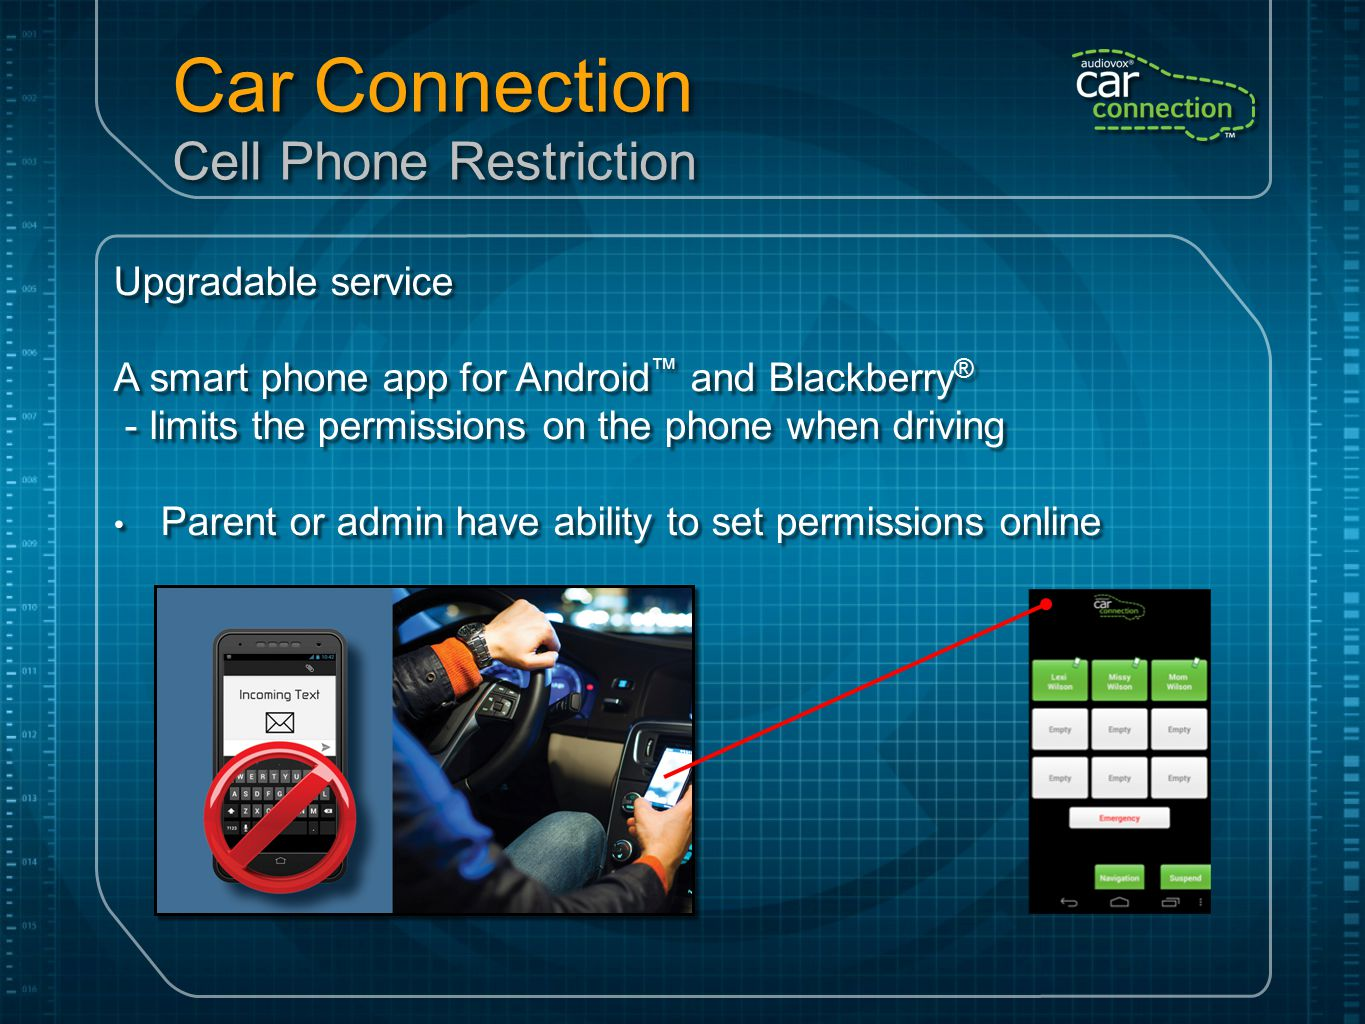 Car Connection Cell Phone Restriction